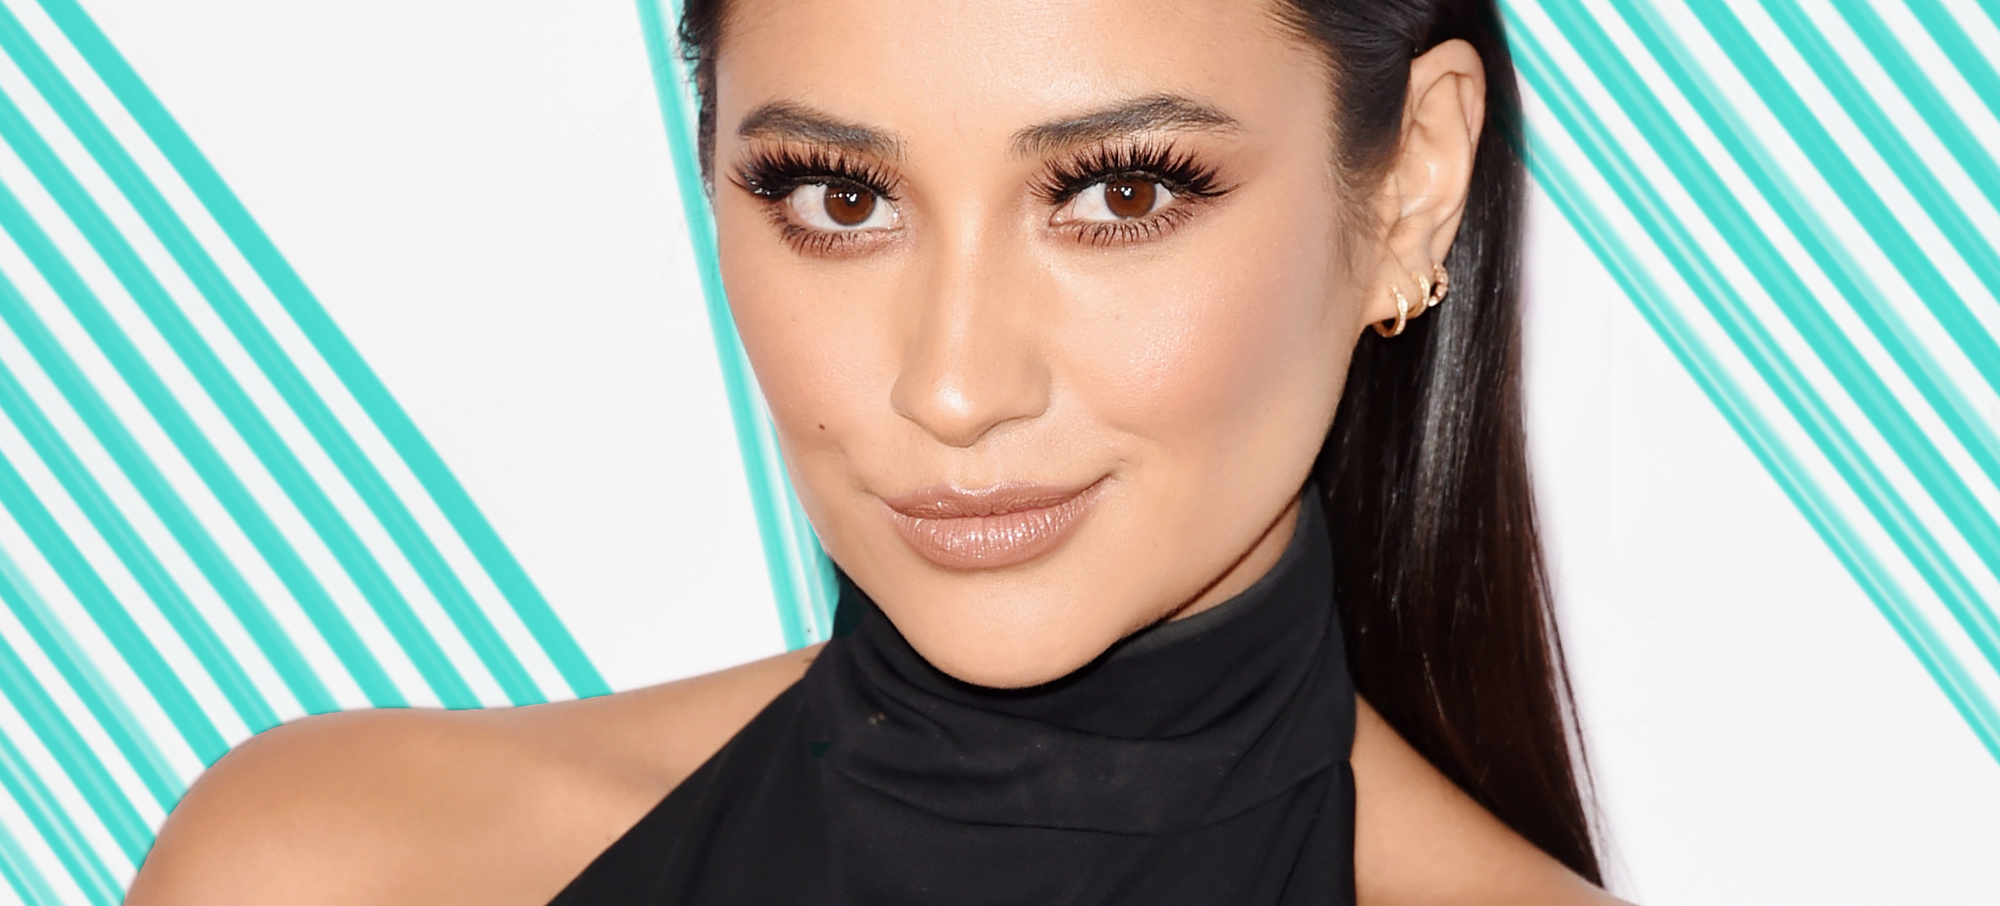 The Next Huge Makeup Trend Is SO Easy To Do